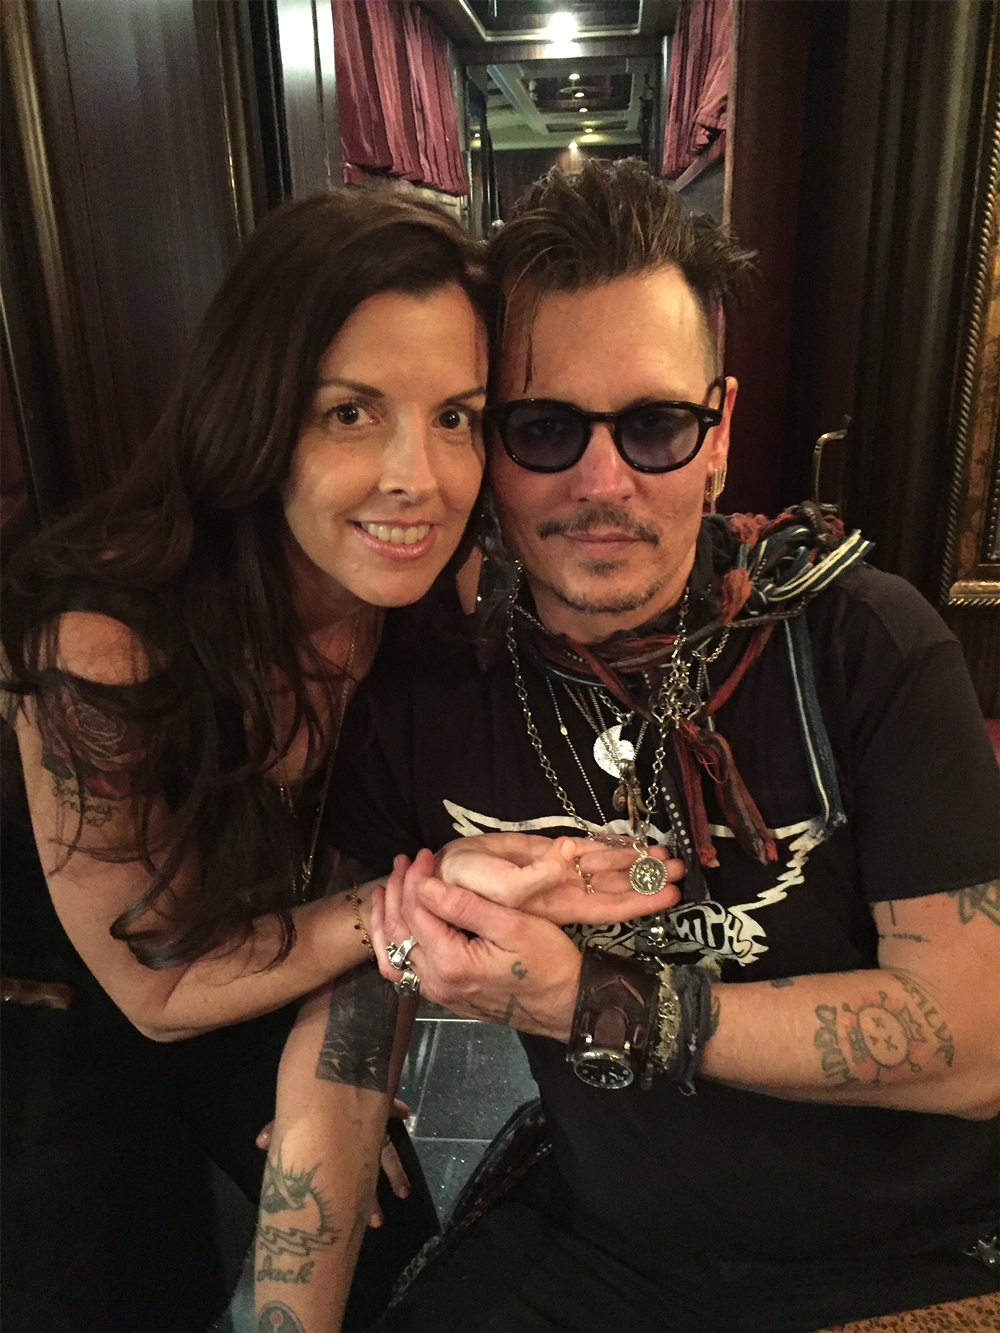 Johnny-Depp-HWV-Jewelry.jpg